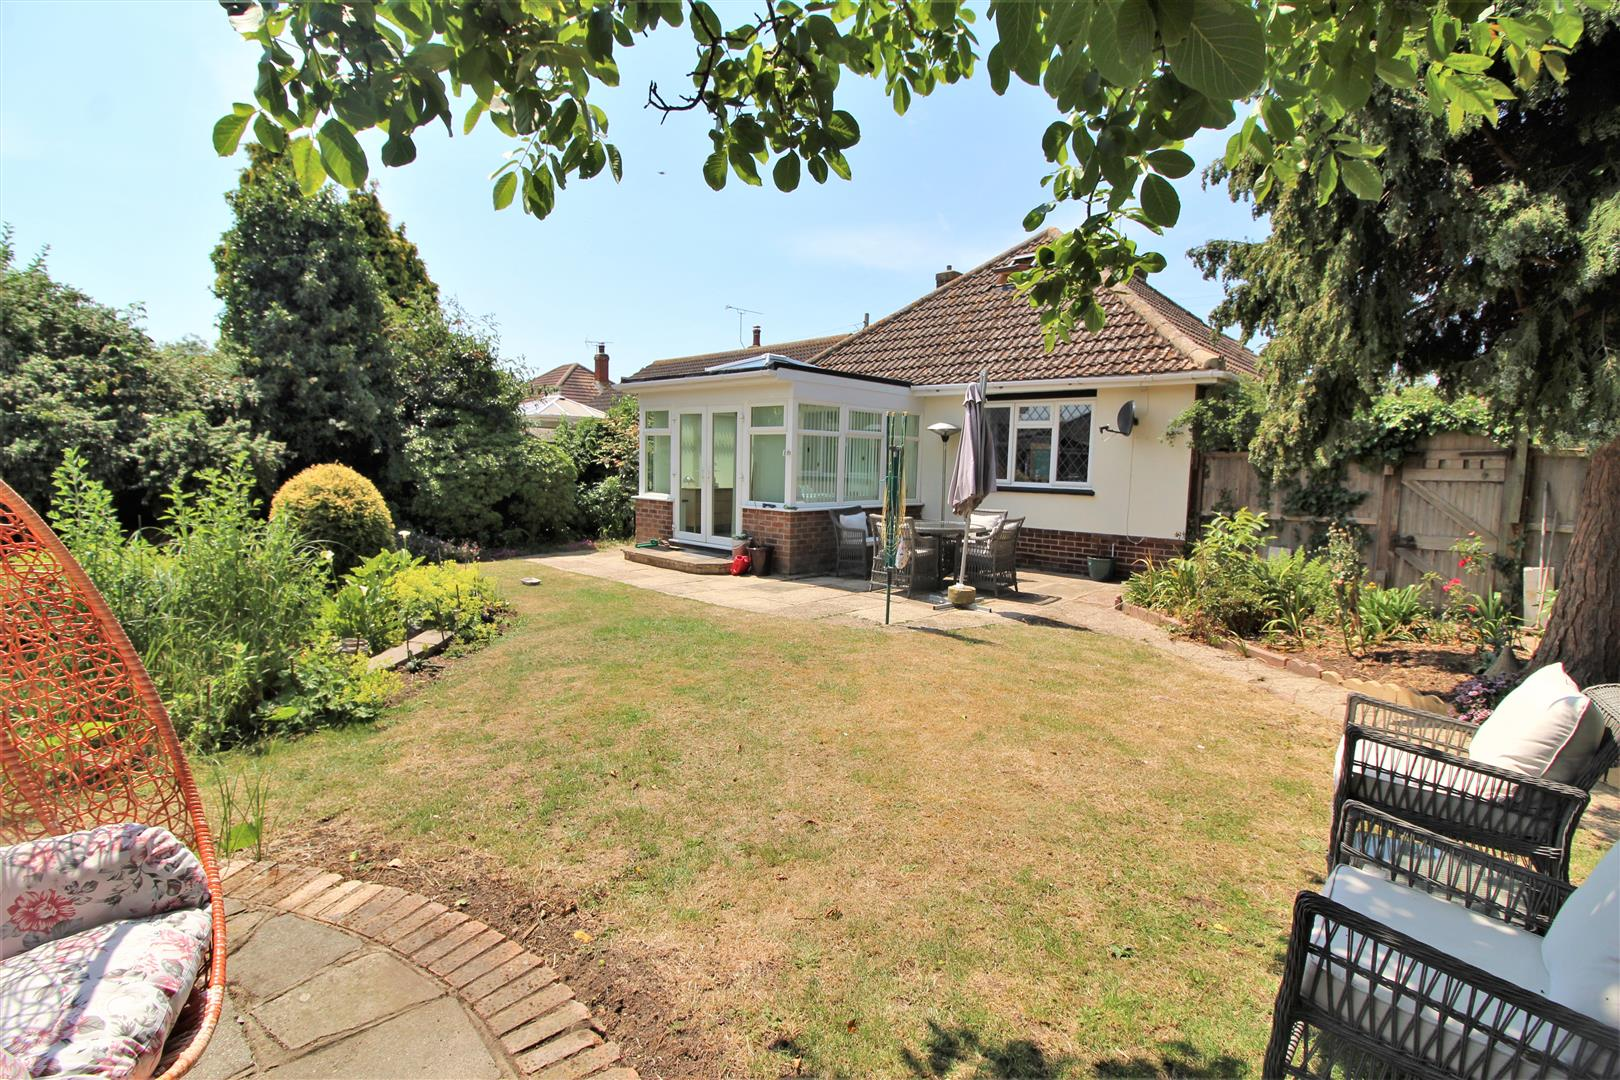 Willow Avenue, Kirby Cross, Essex, CO13 0PS